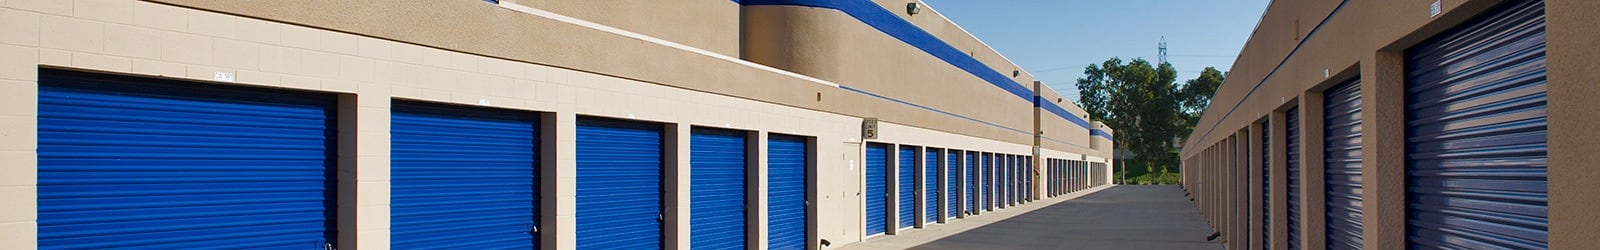 Mira Mesa Self Storage Customer's Reviews